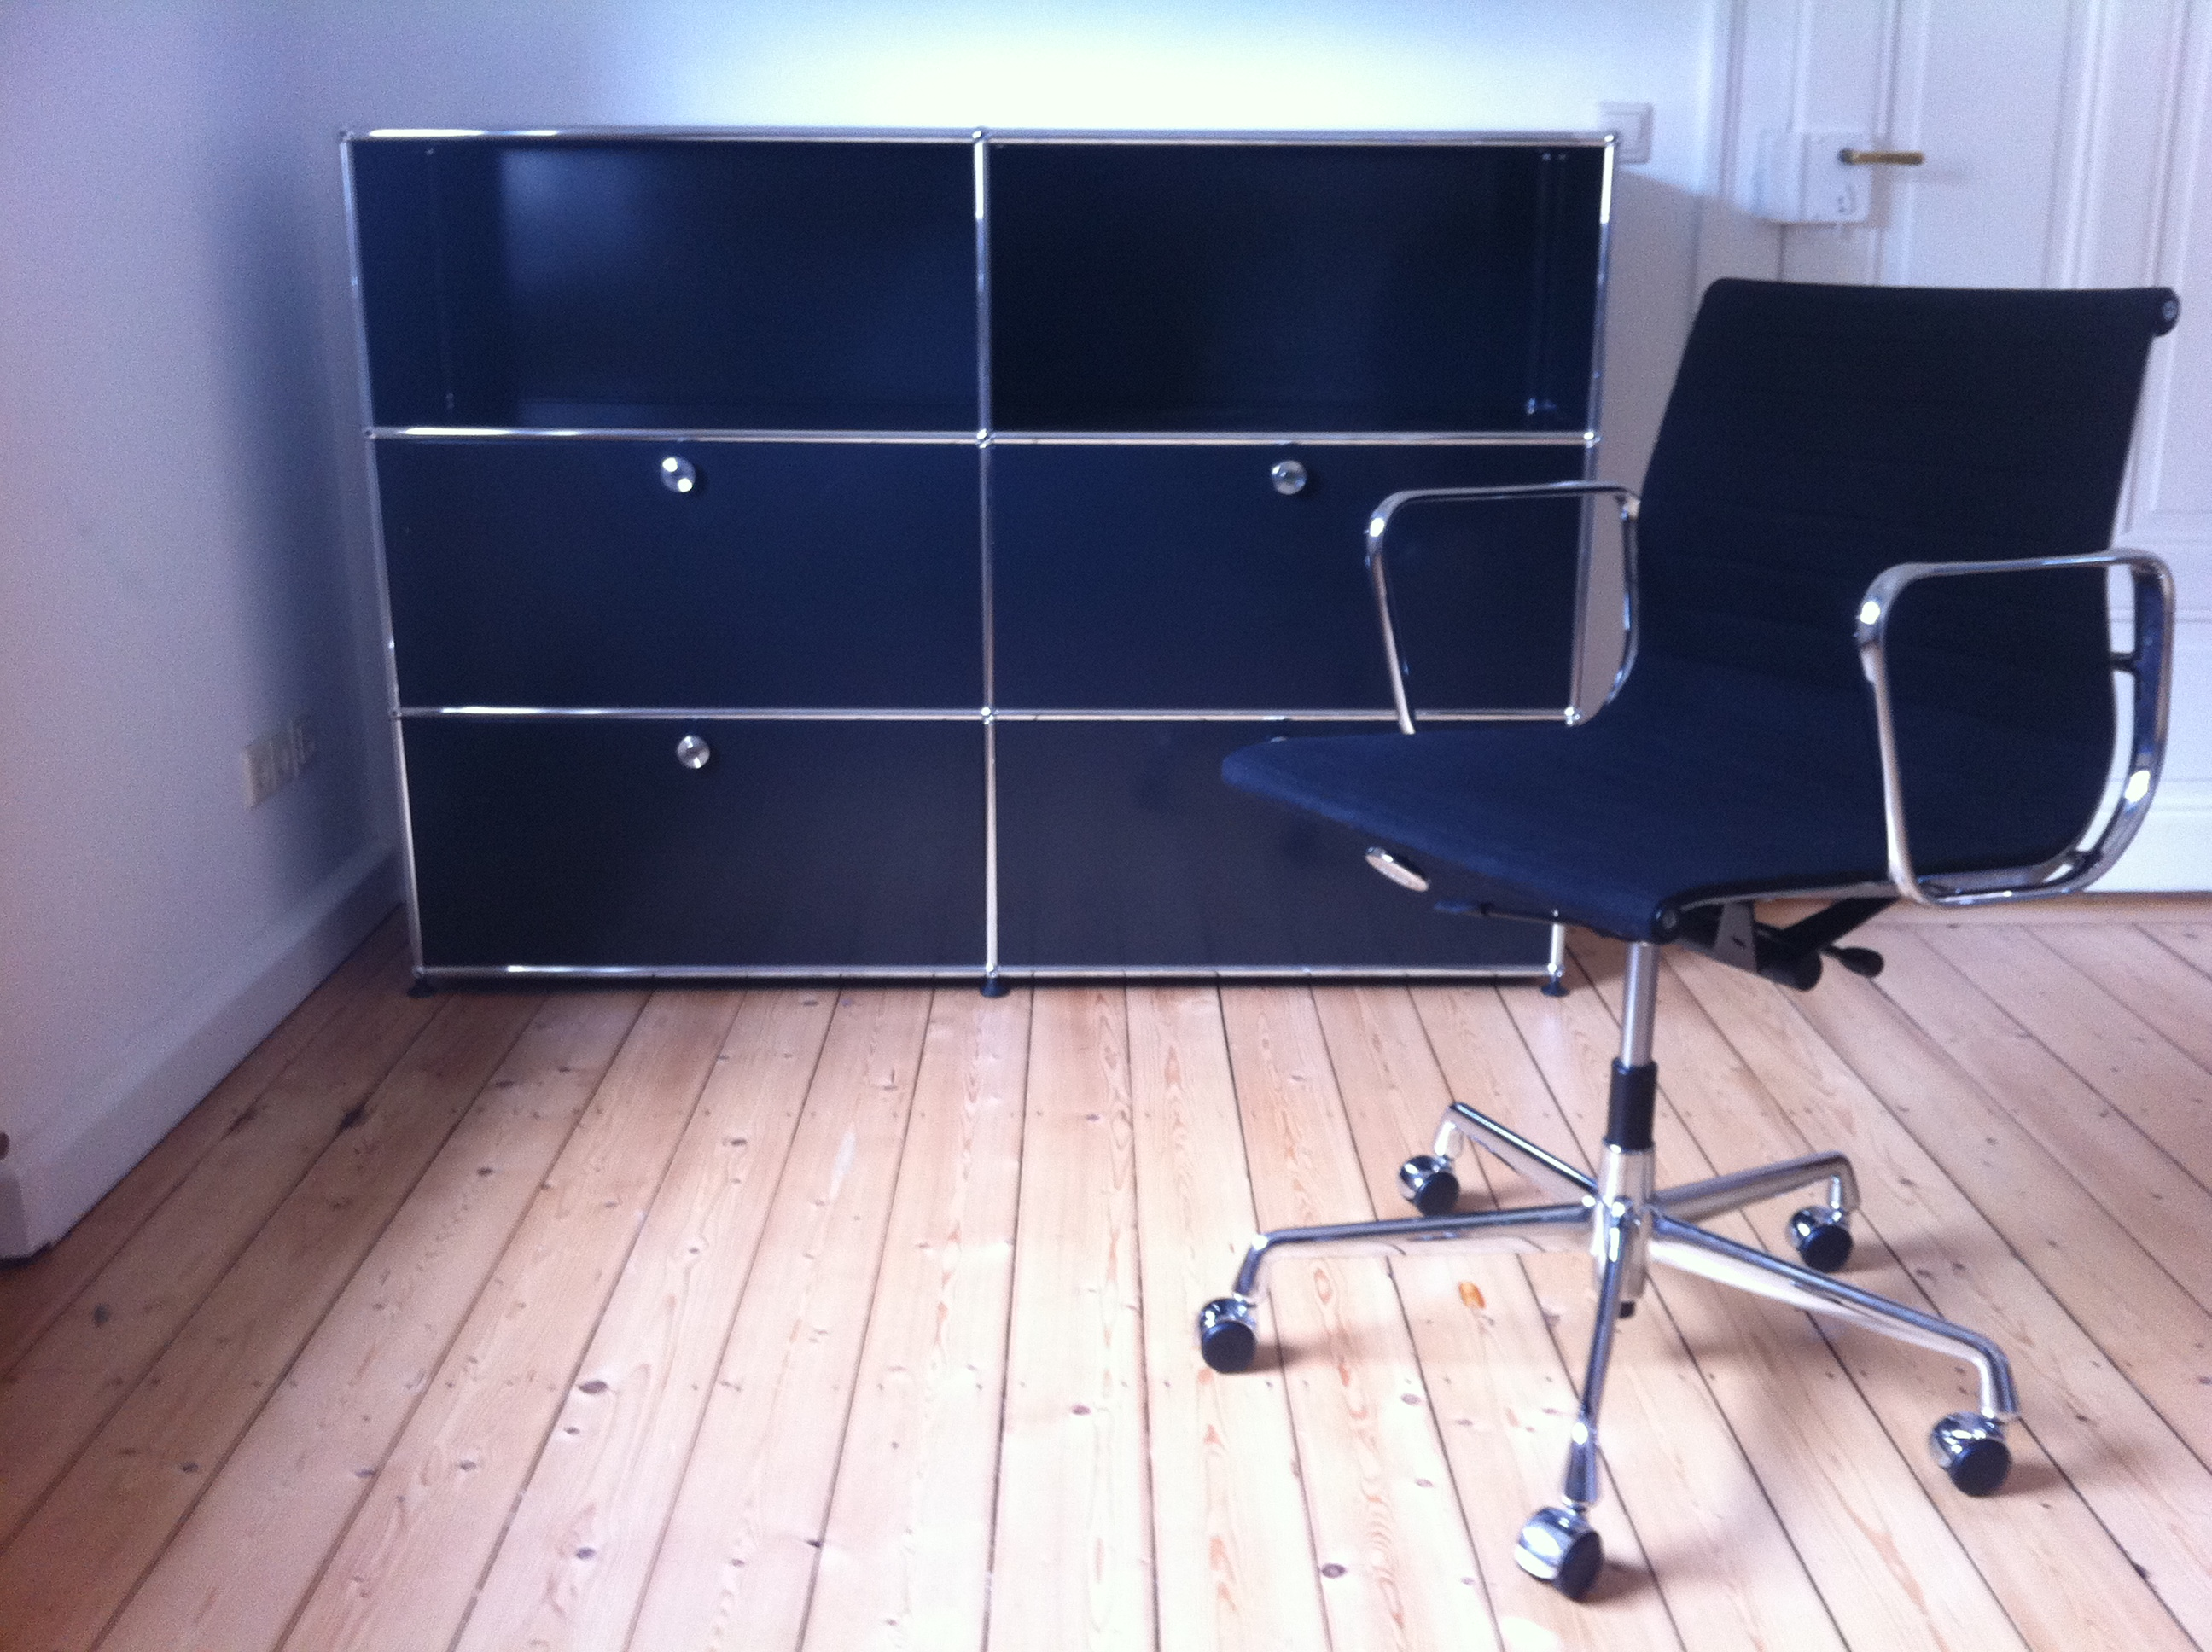 usm markt usm haller m bel der designklassiker im gebrauchtmarkt. Black Bedroom Furniture Sets. Home Design Ideas